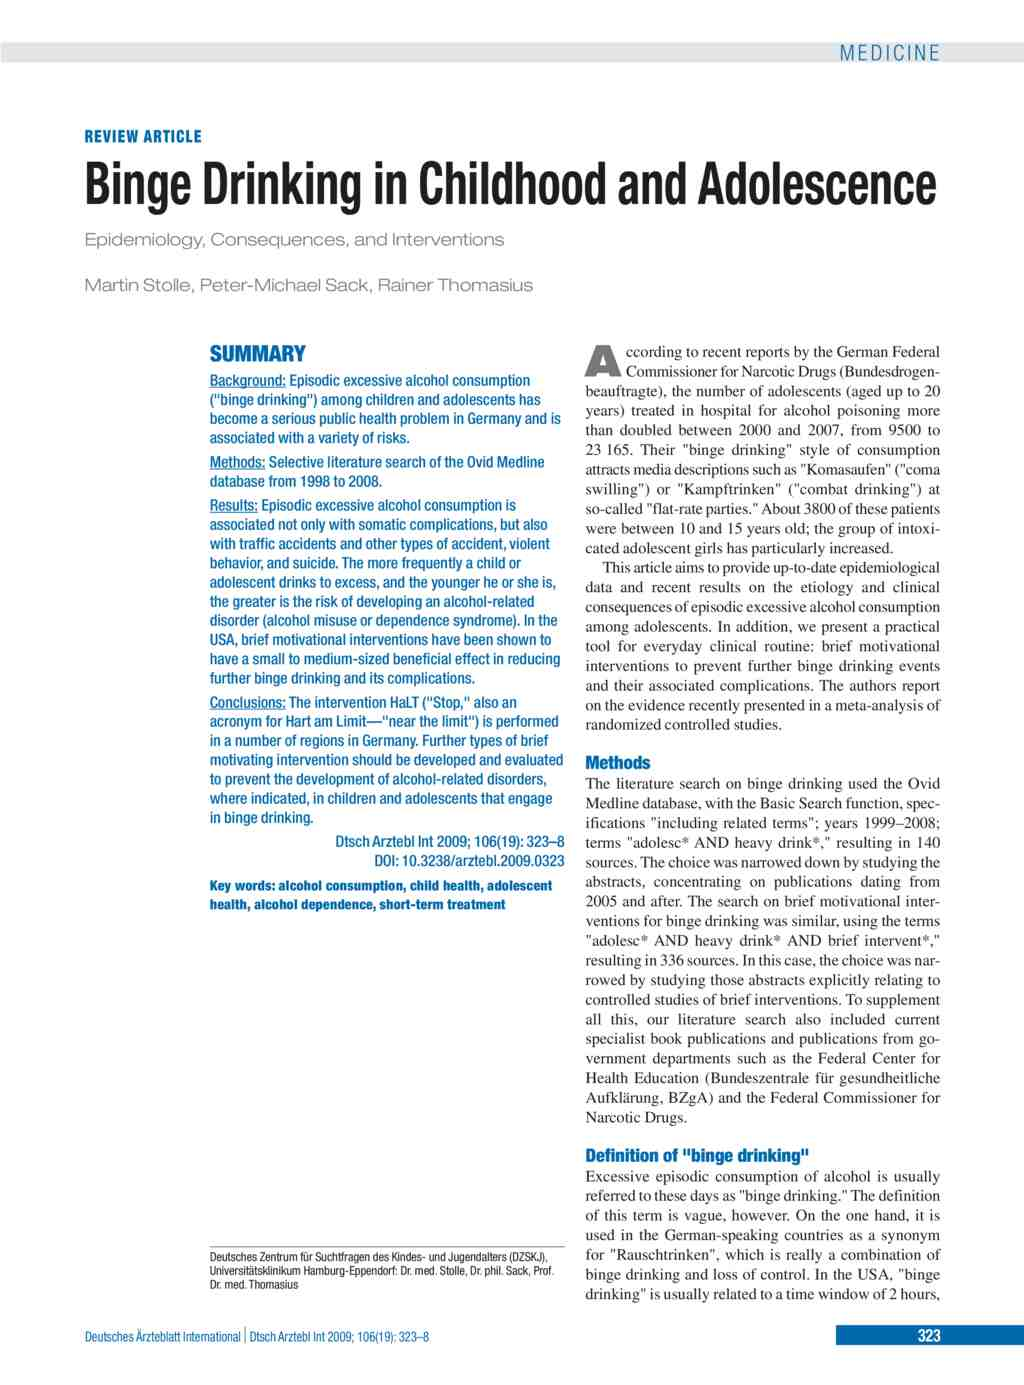 Binge Drinking in Childhood and Adolescence (08 05 2009)